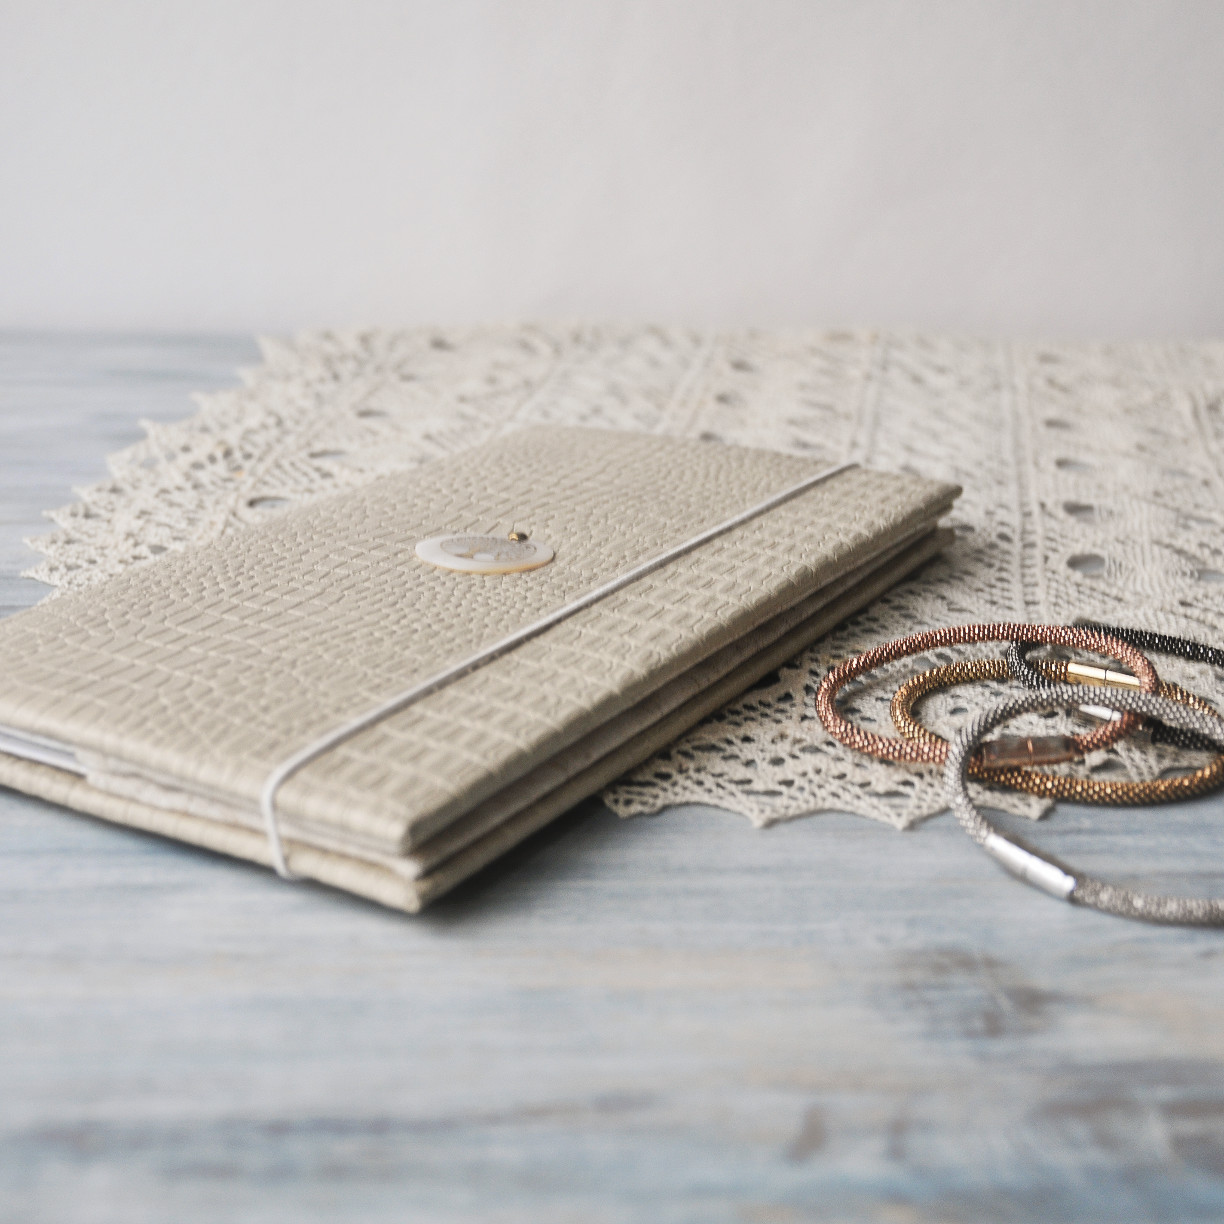 family-travel-wallet-document-holder-ivory-crocco-eco-leather-made-in-barcelona.jpg